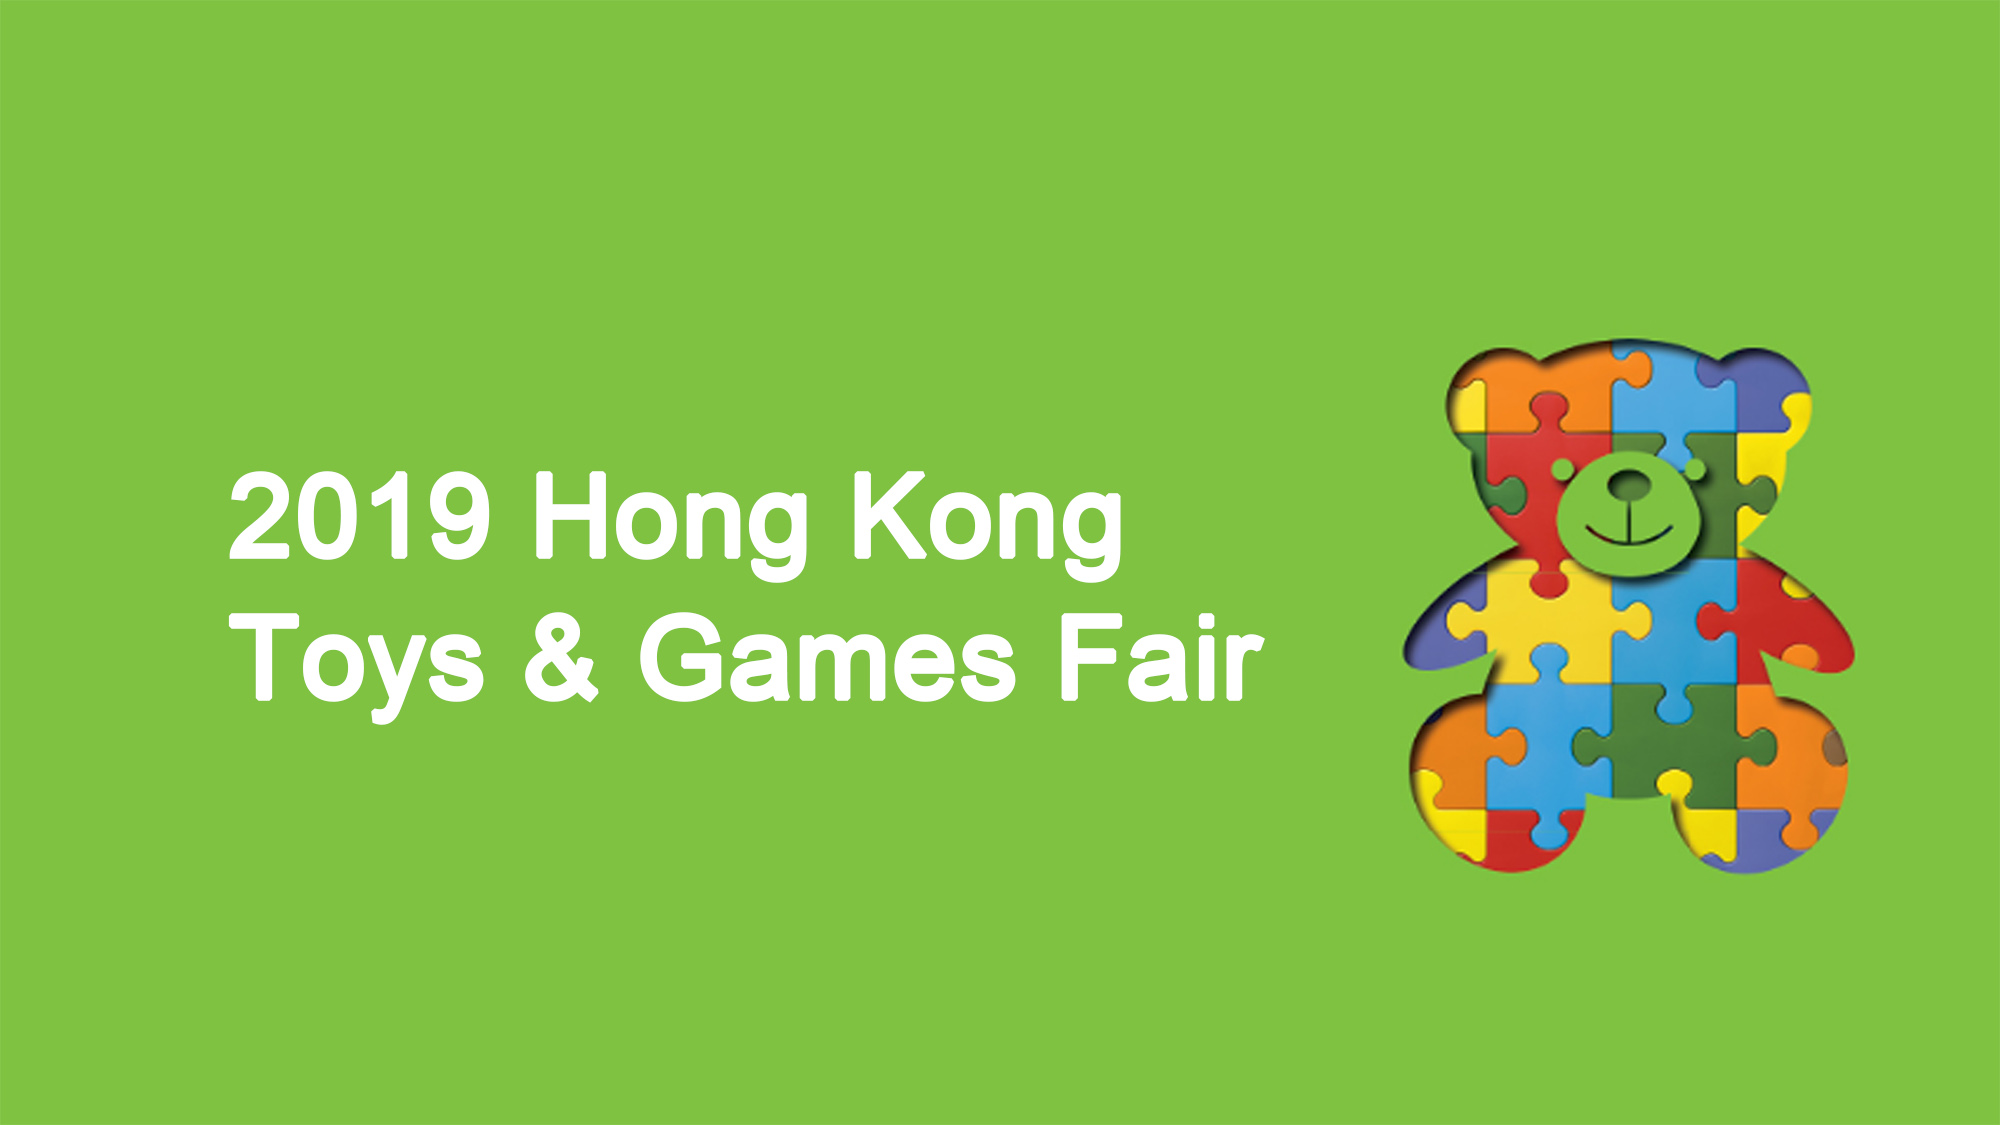 When & How to Visit 2019 Hong Kong Toys & Games Fair?